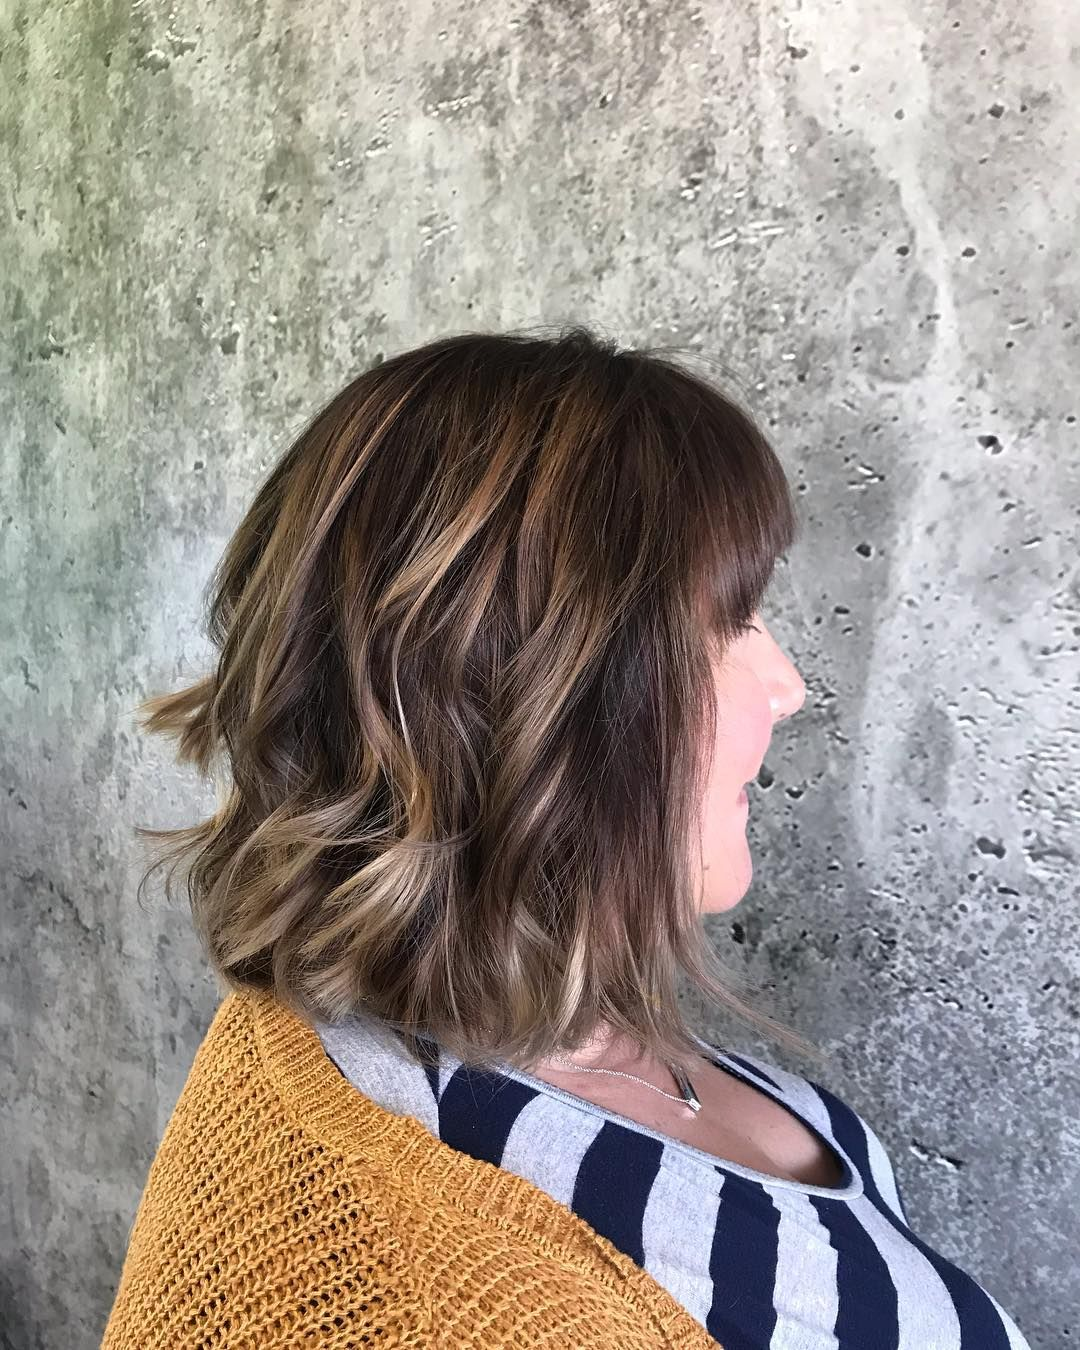 New The 10 Best Hairstyles With Pictures Never Disappointed When I Do This Lovely Ladys Color Avedastylist H Hair Styles Cool Hairstyles Hair Colorist